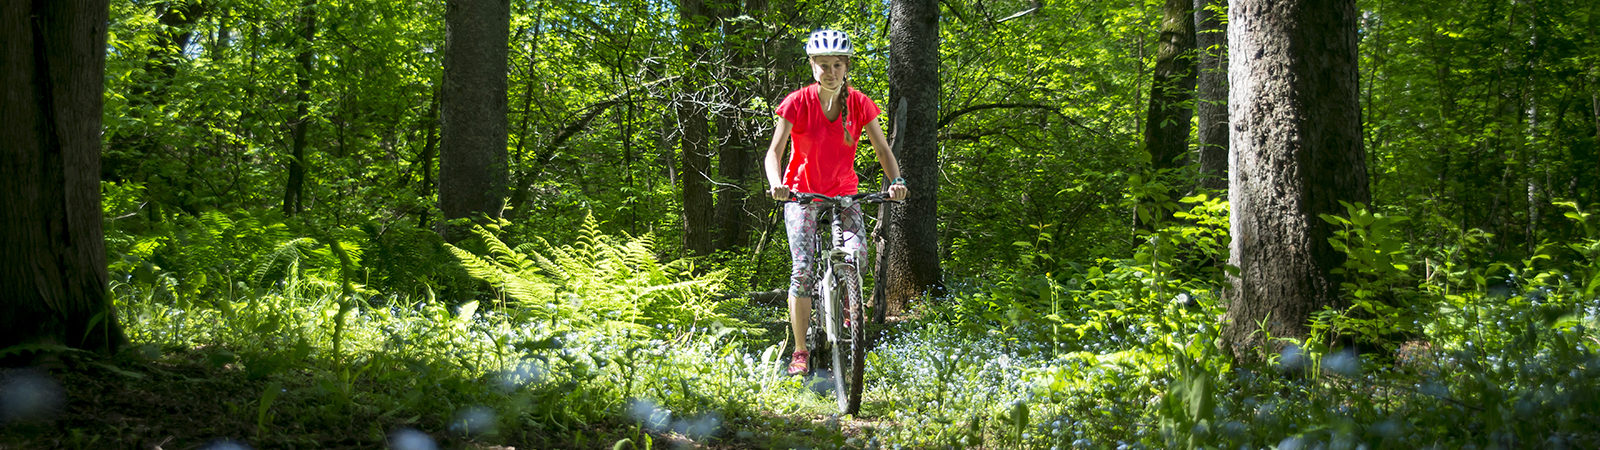 Northland College student bikes through the woods.